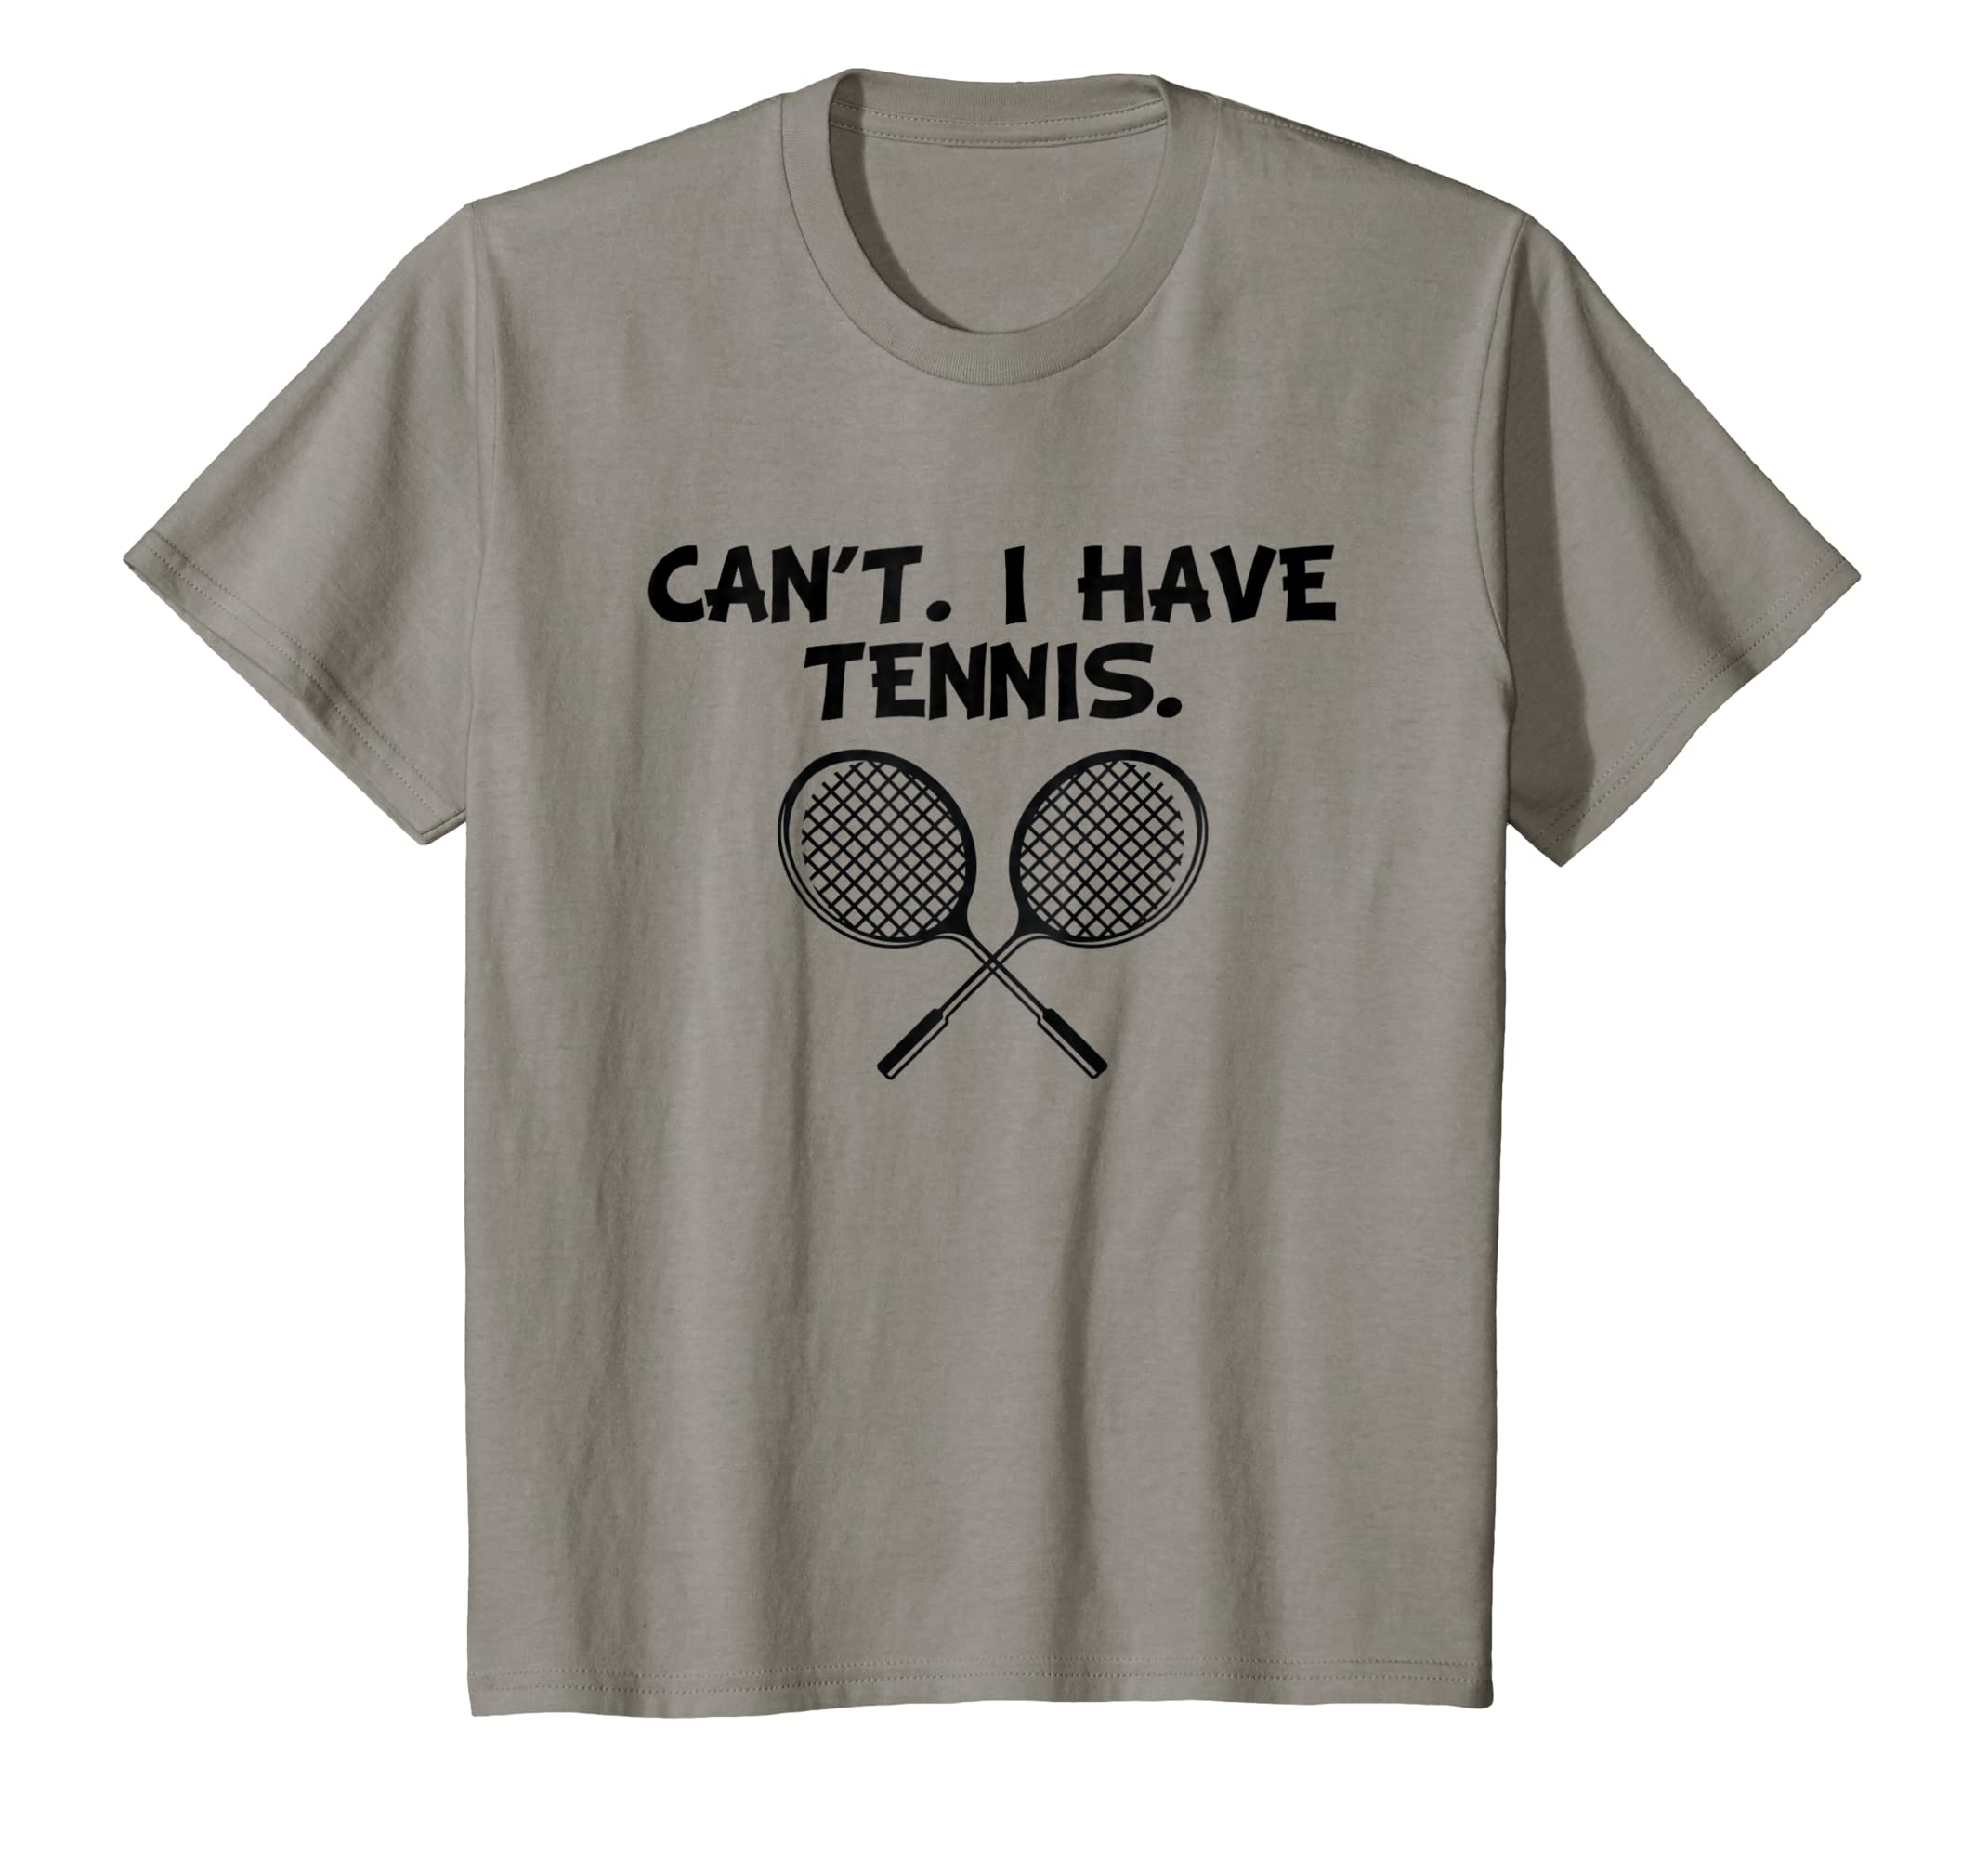 9652e0cf28 Amazon.com: Can't. I Have Tennis. Funny Sports T-Shirt: Clothing